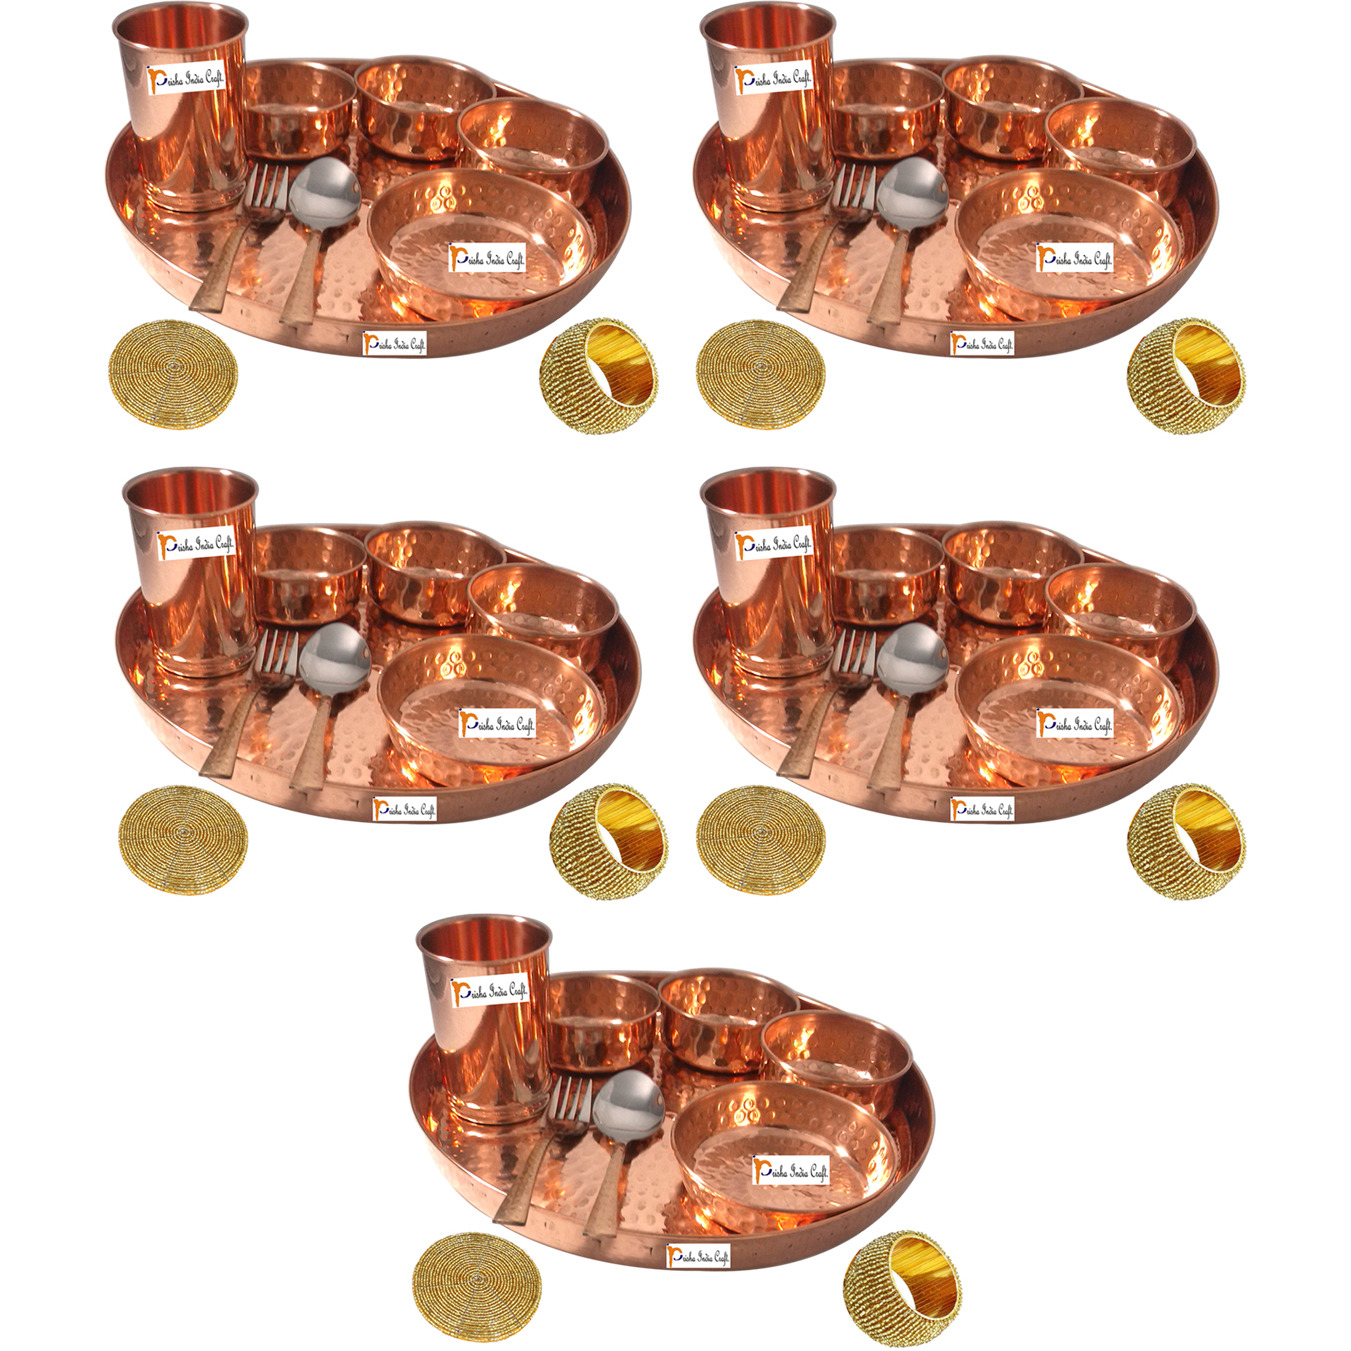 Set of 5 Prisha India Craft B. Handmade Indian Dinnerware Pure Copper Thali Set Dia 12  Traditional Dinner Set of Plate, Bowl, Spoons, Glass with Napkin ring and Coaster - Christmas Gift